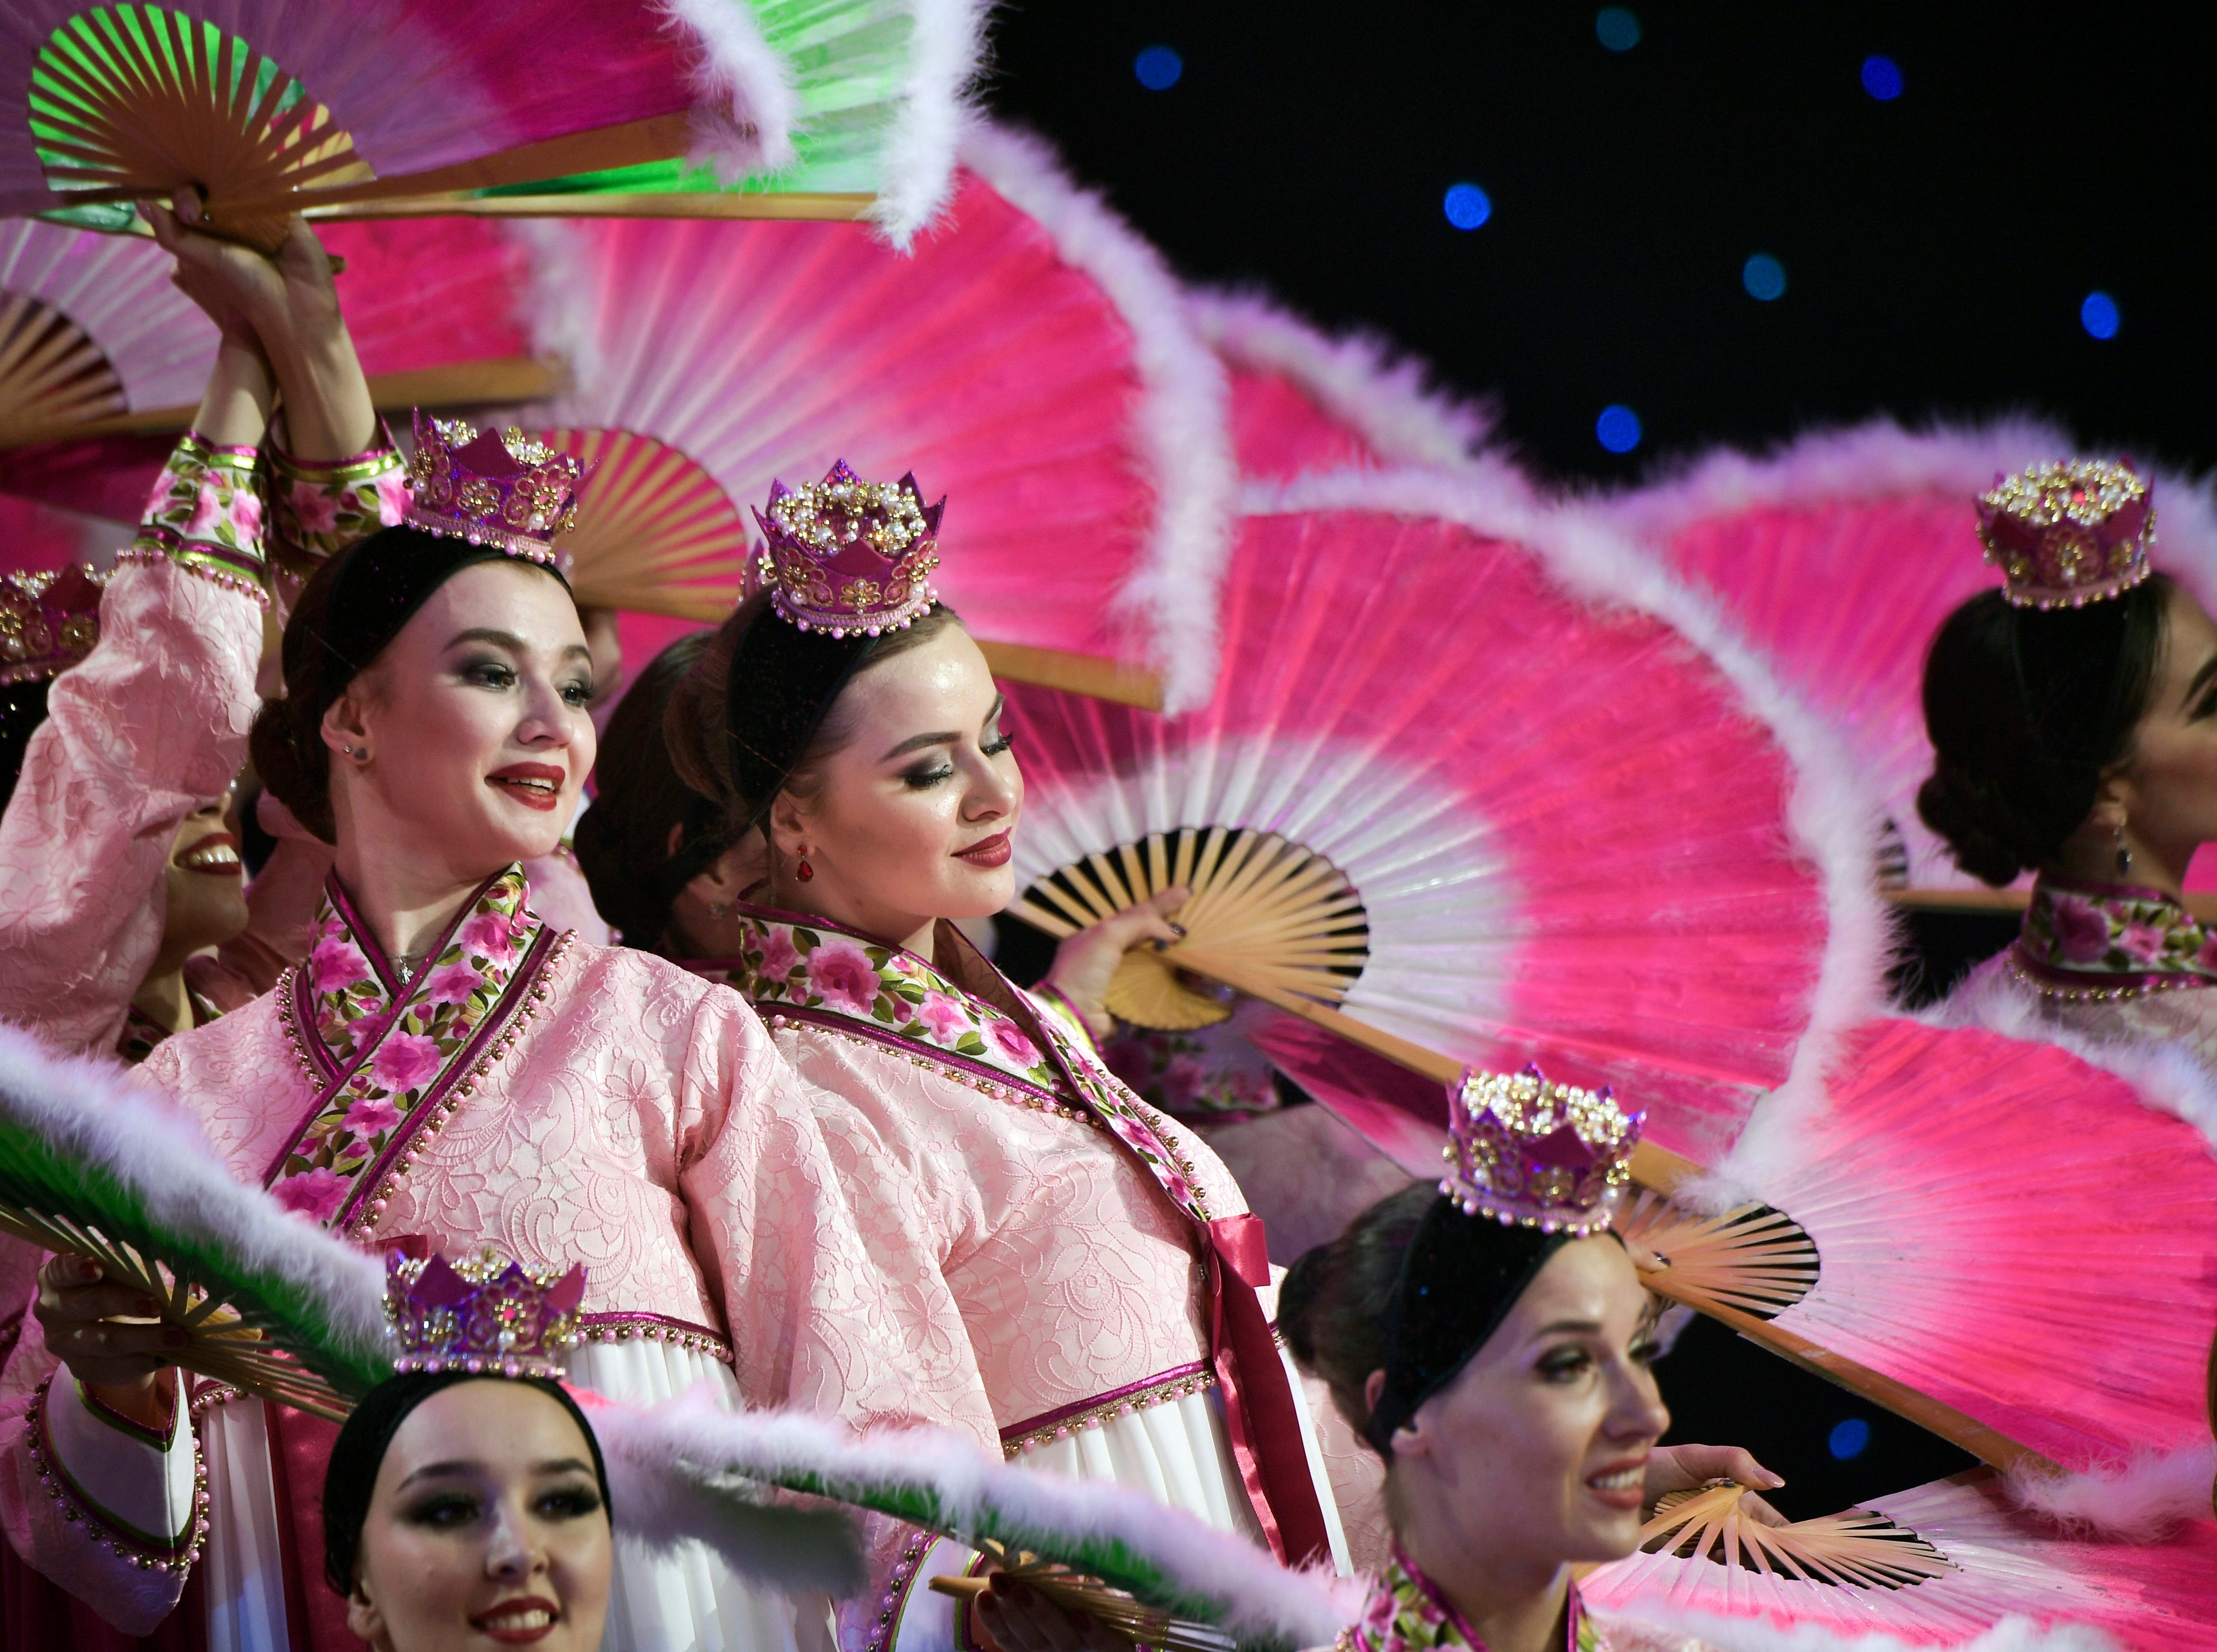 Artists perform during a reception after talks between Russian President Vladimir Putin and North Korean leader Kim Jong Un at the Far Eastern Federal University campus on Russky Island in Vladivostok, Russia, Thursday, April 25, 2019. President Vladimir Putin says after talks with North Korean leader Kim Jong Un that Pyongyang is ready to proceed toward denuclearization, but that it needs serious security guarantees to do so.